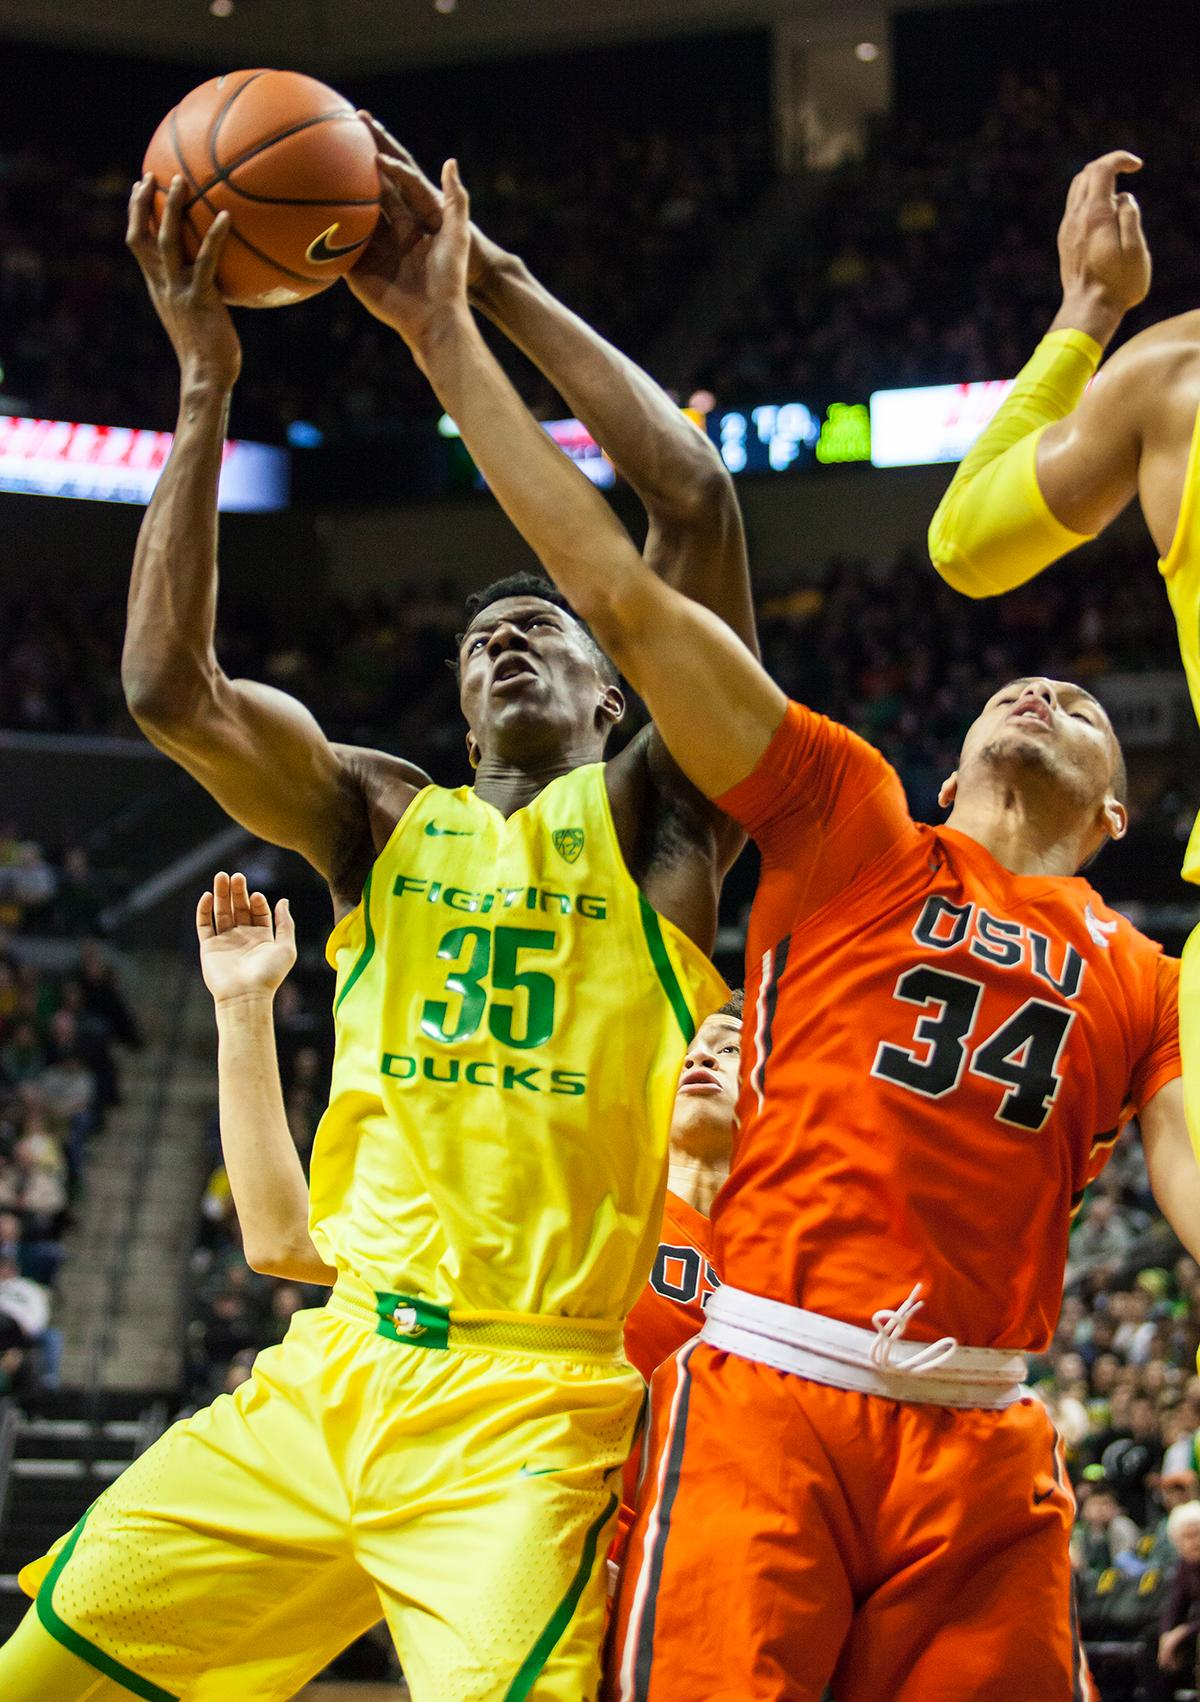 Oregon forward Kavell Bigby-Williams (#35) and Oregon State forward Ben Koné (#34) battle for control of a rebound off the Oregon Basket. The Oregon Ducks defeated the Oregon State Beavers 85 to 43. Photo by Ben Lonergan, Oregon News Lab